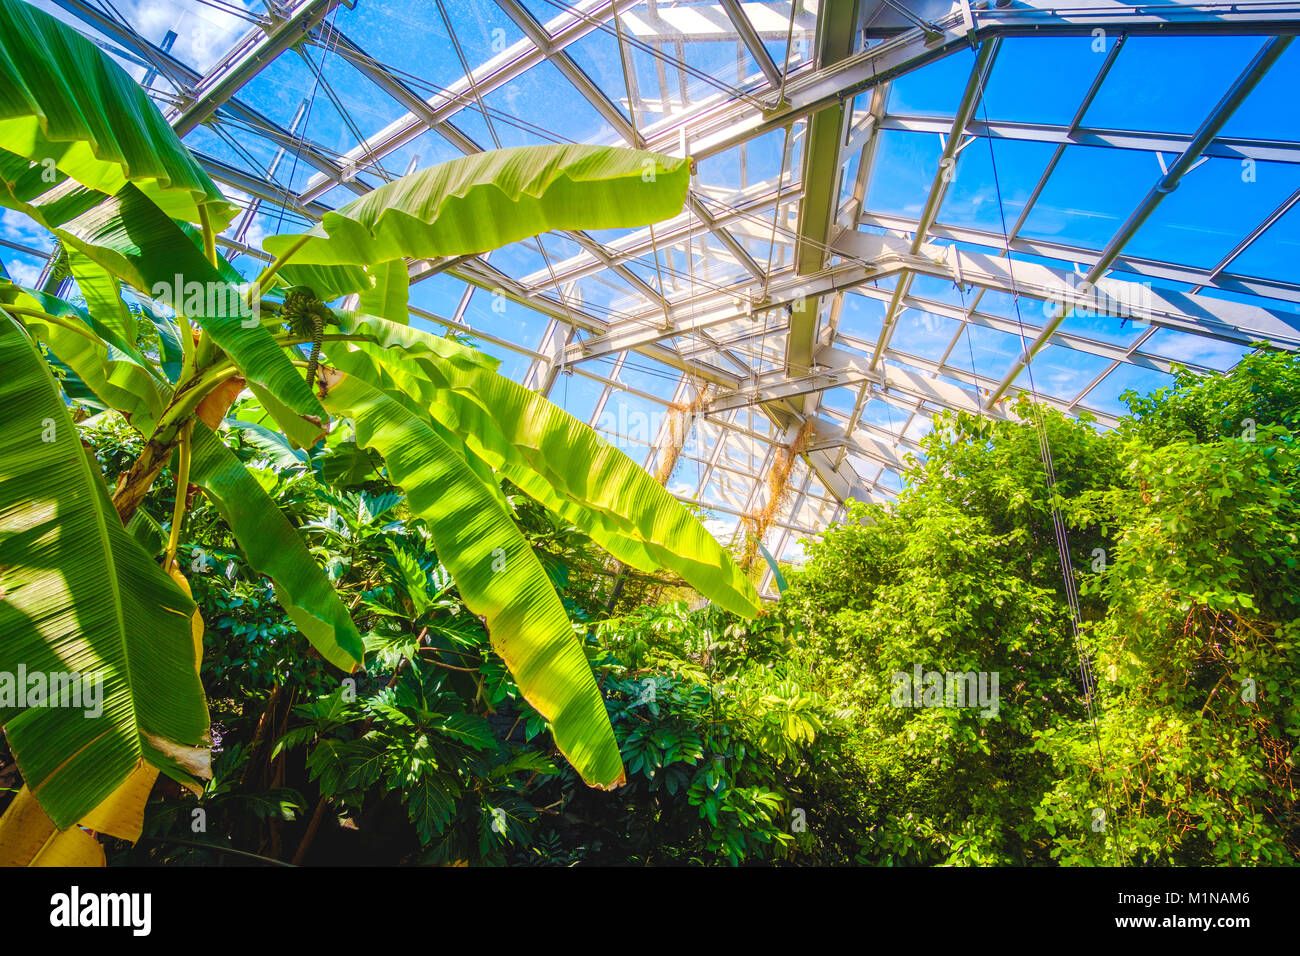 modern greenhouse interior glass building inside design - Stock Image